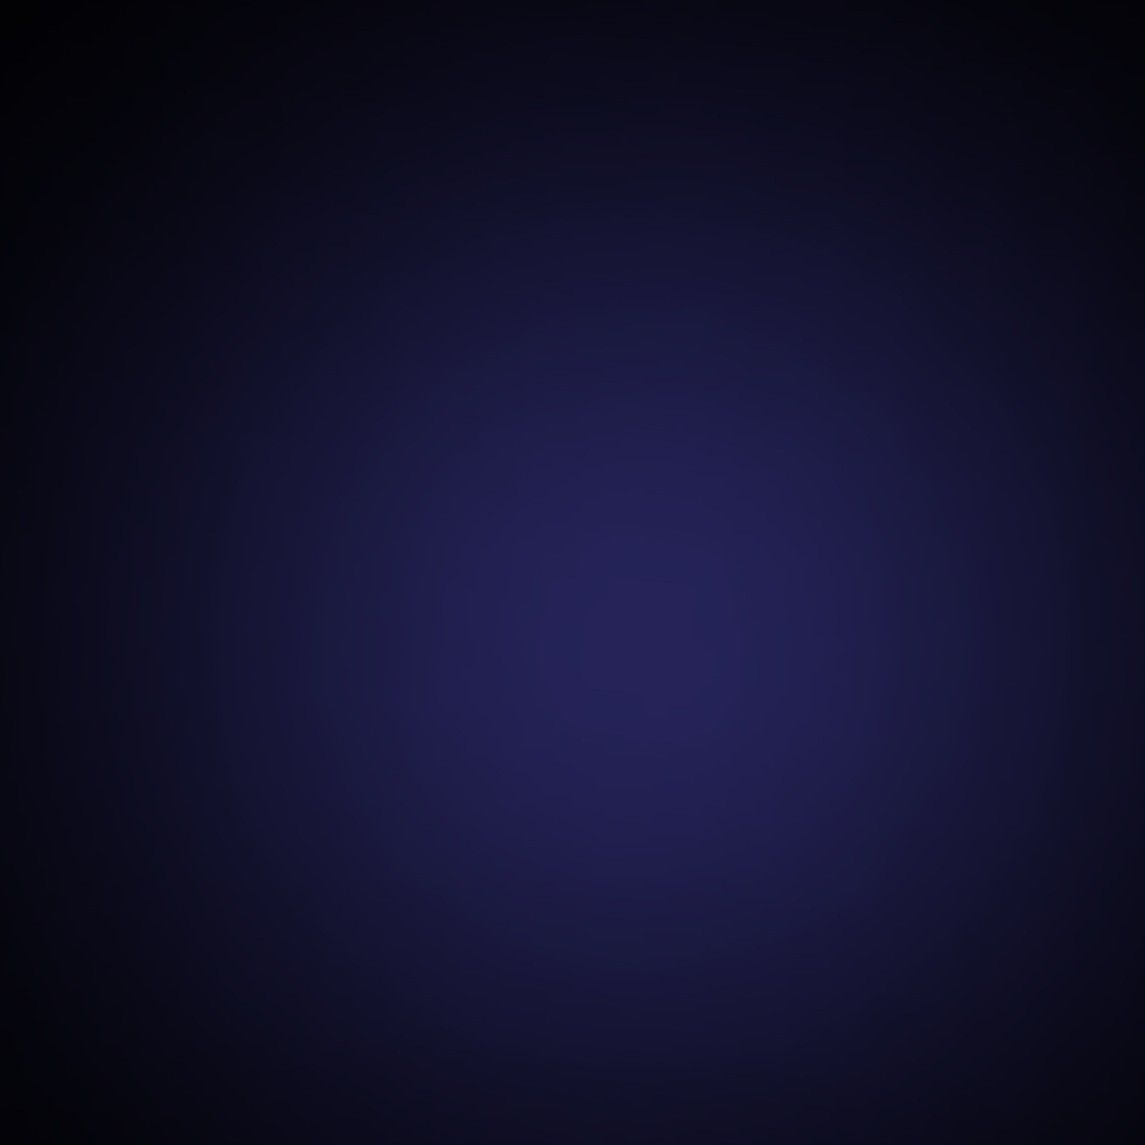 Background For Editing New Dark Blue Background Blue Backgrounds Samsung Wallpaper